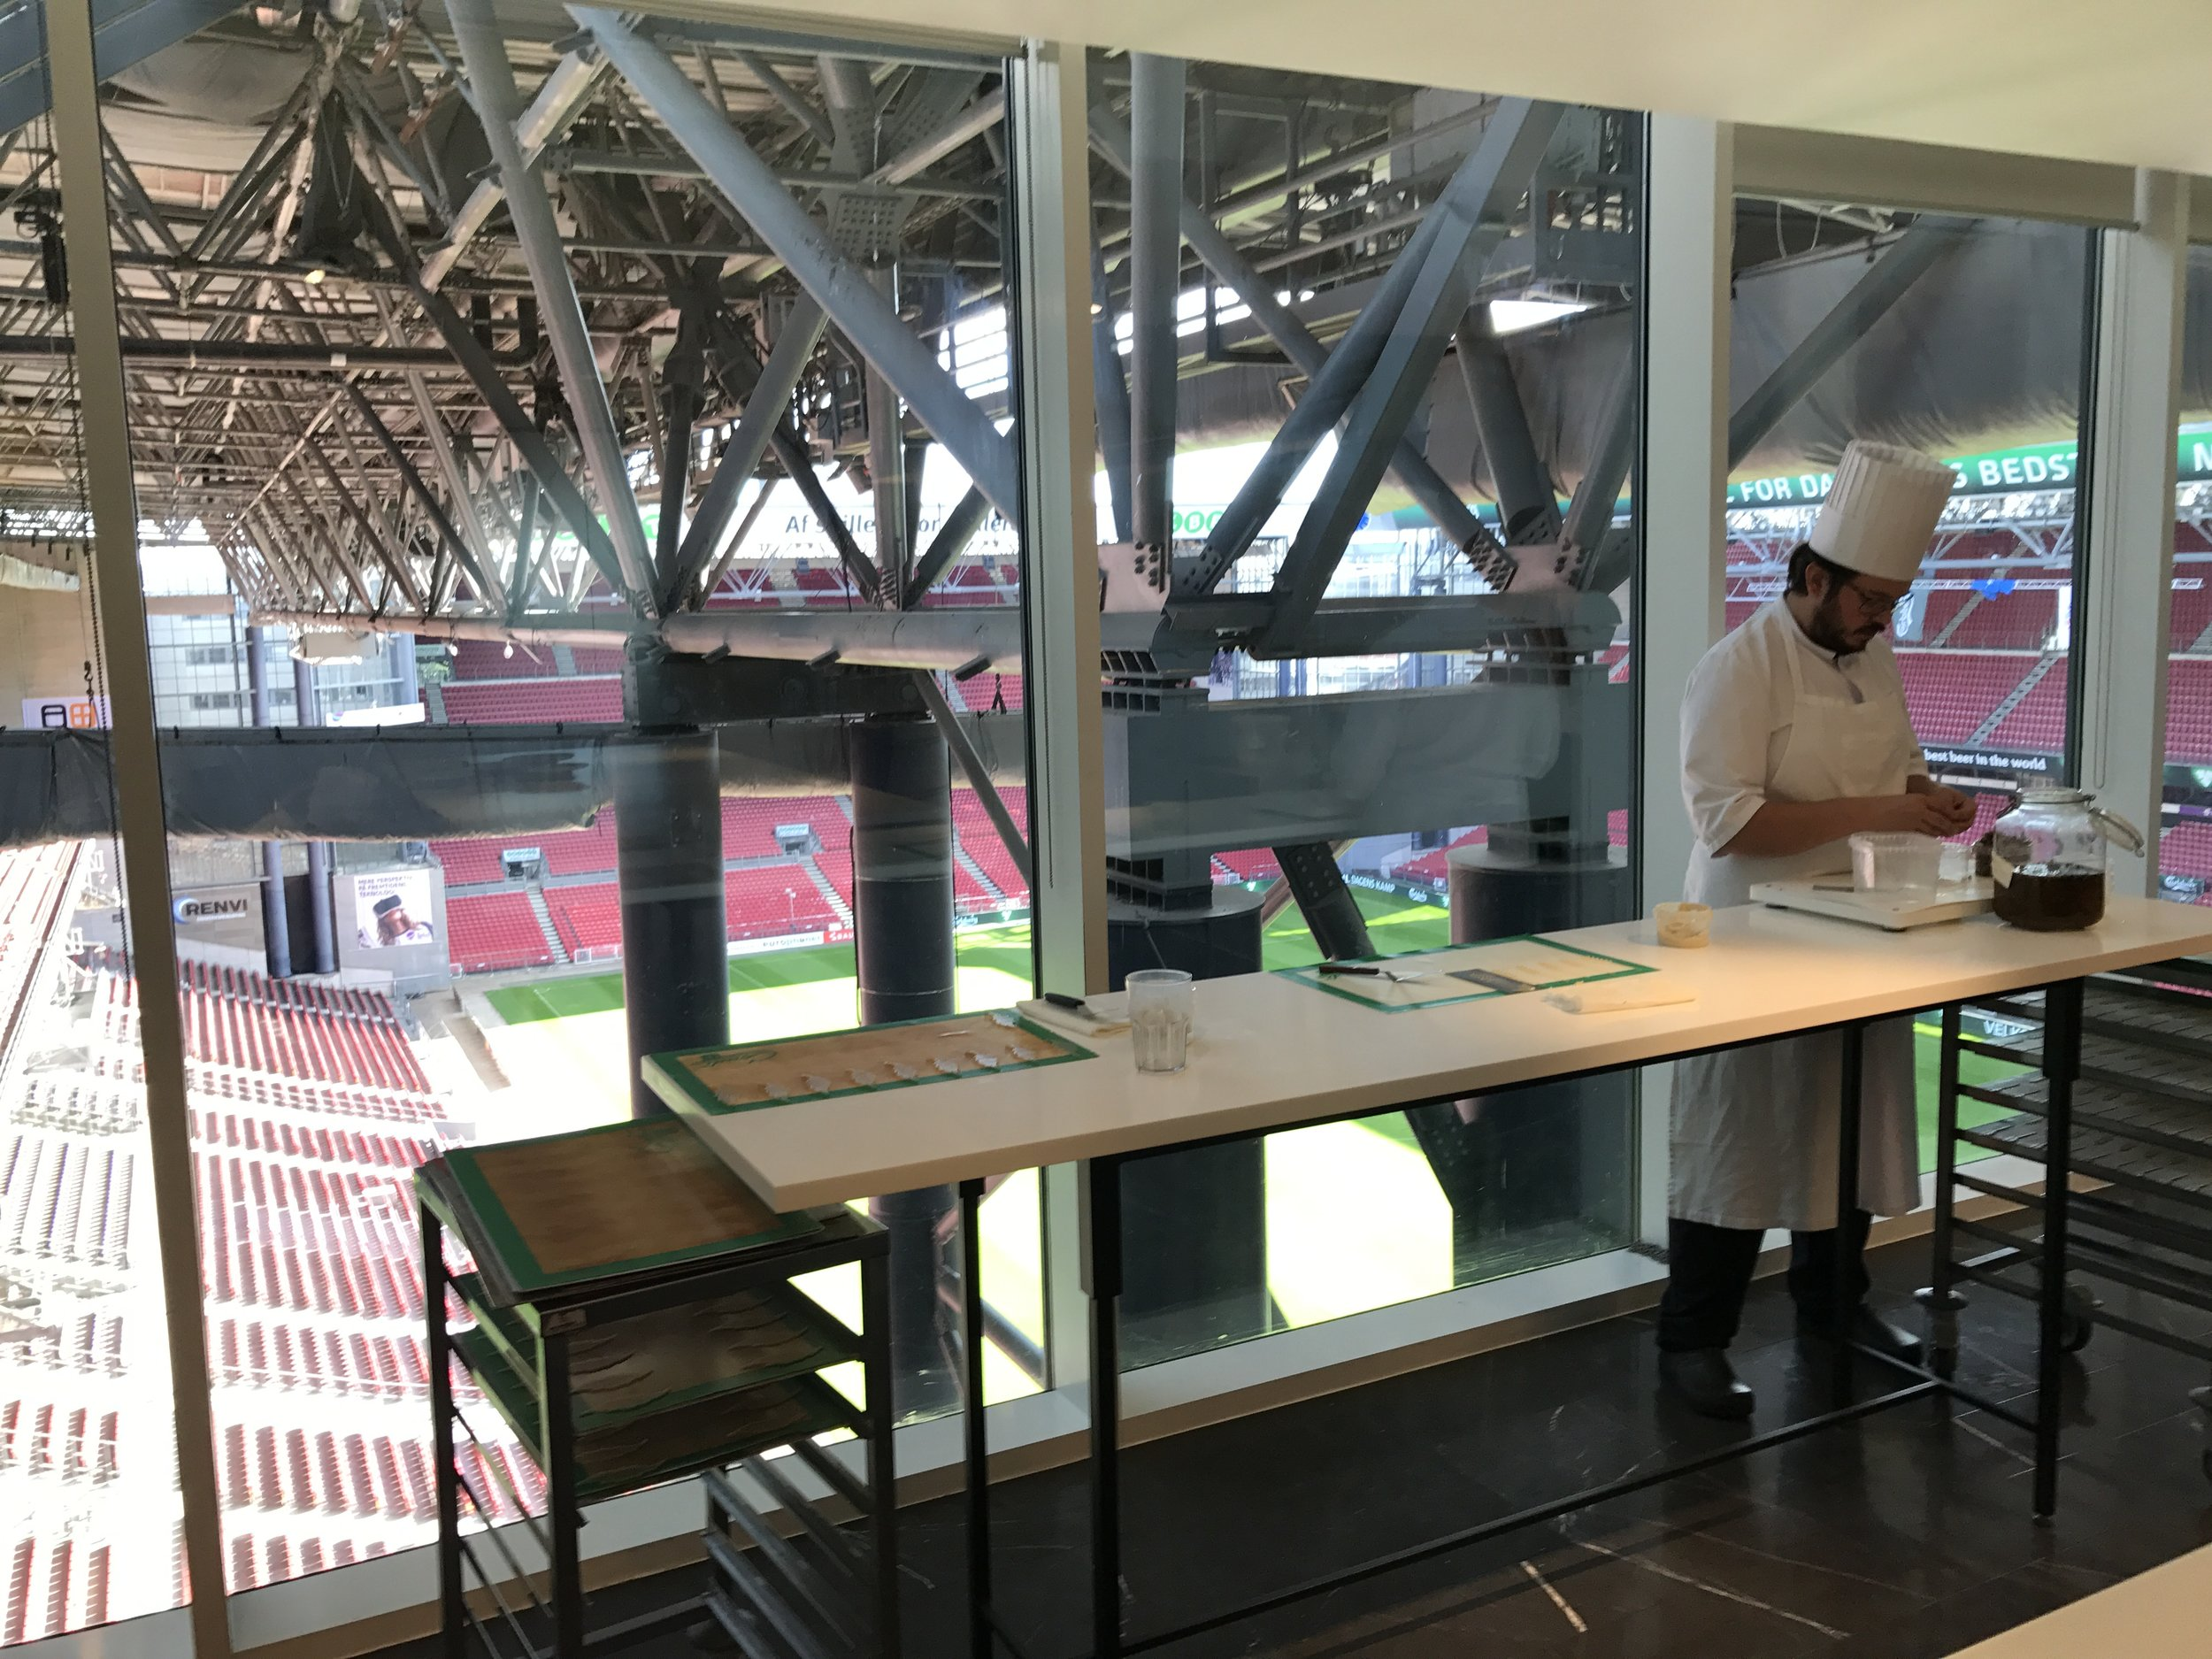 The kitchen overlooks the stadium-- pretty cool on match day!